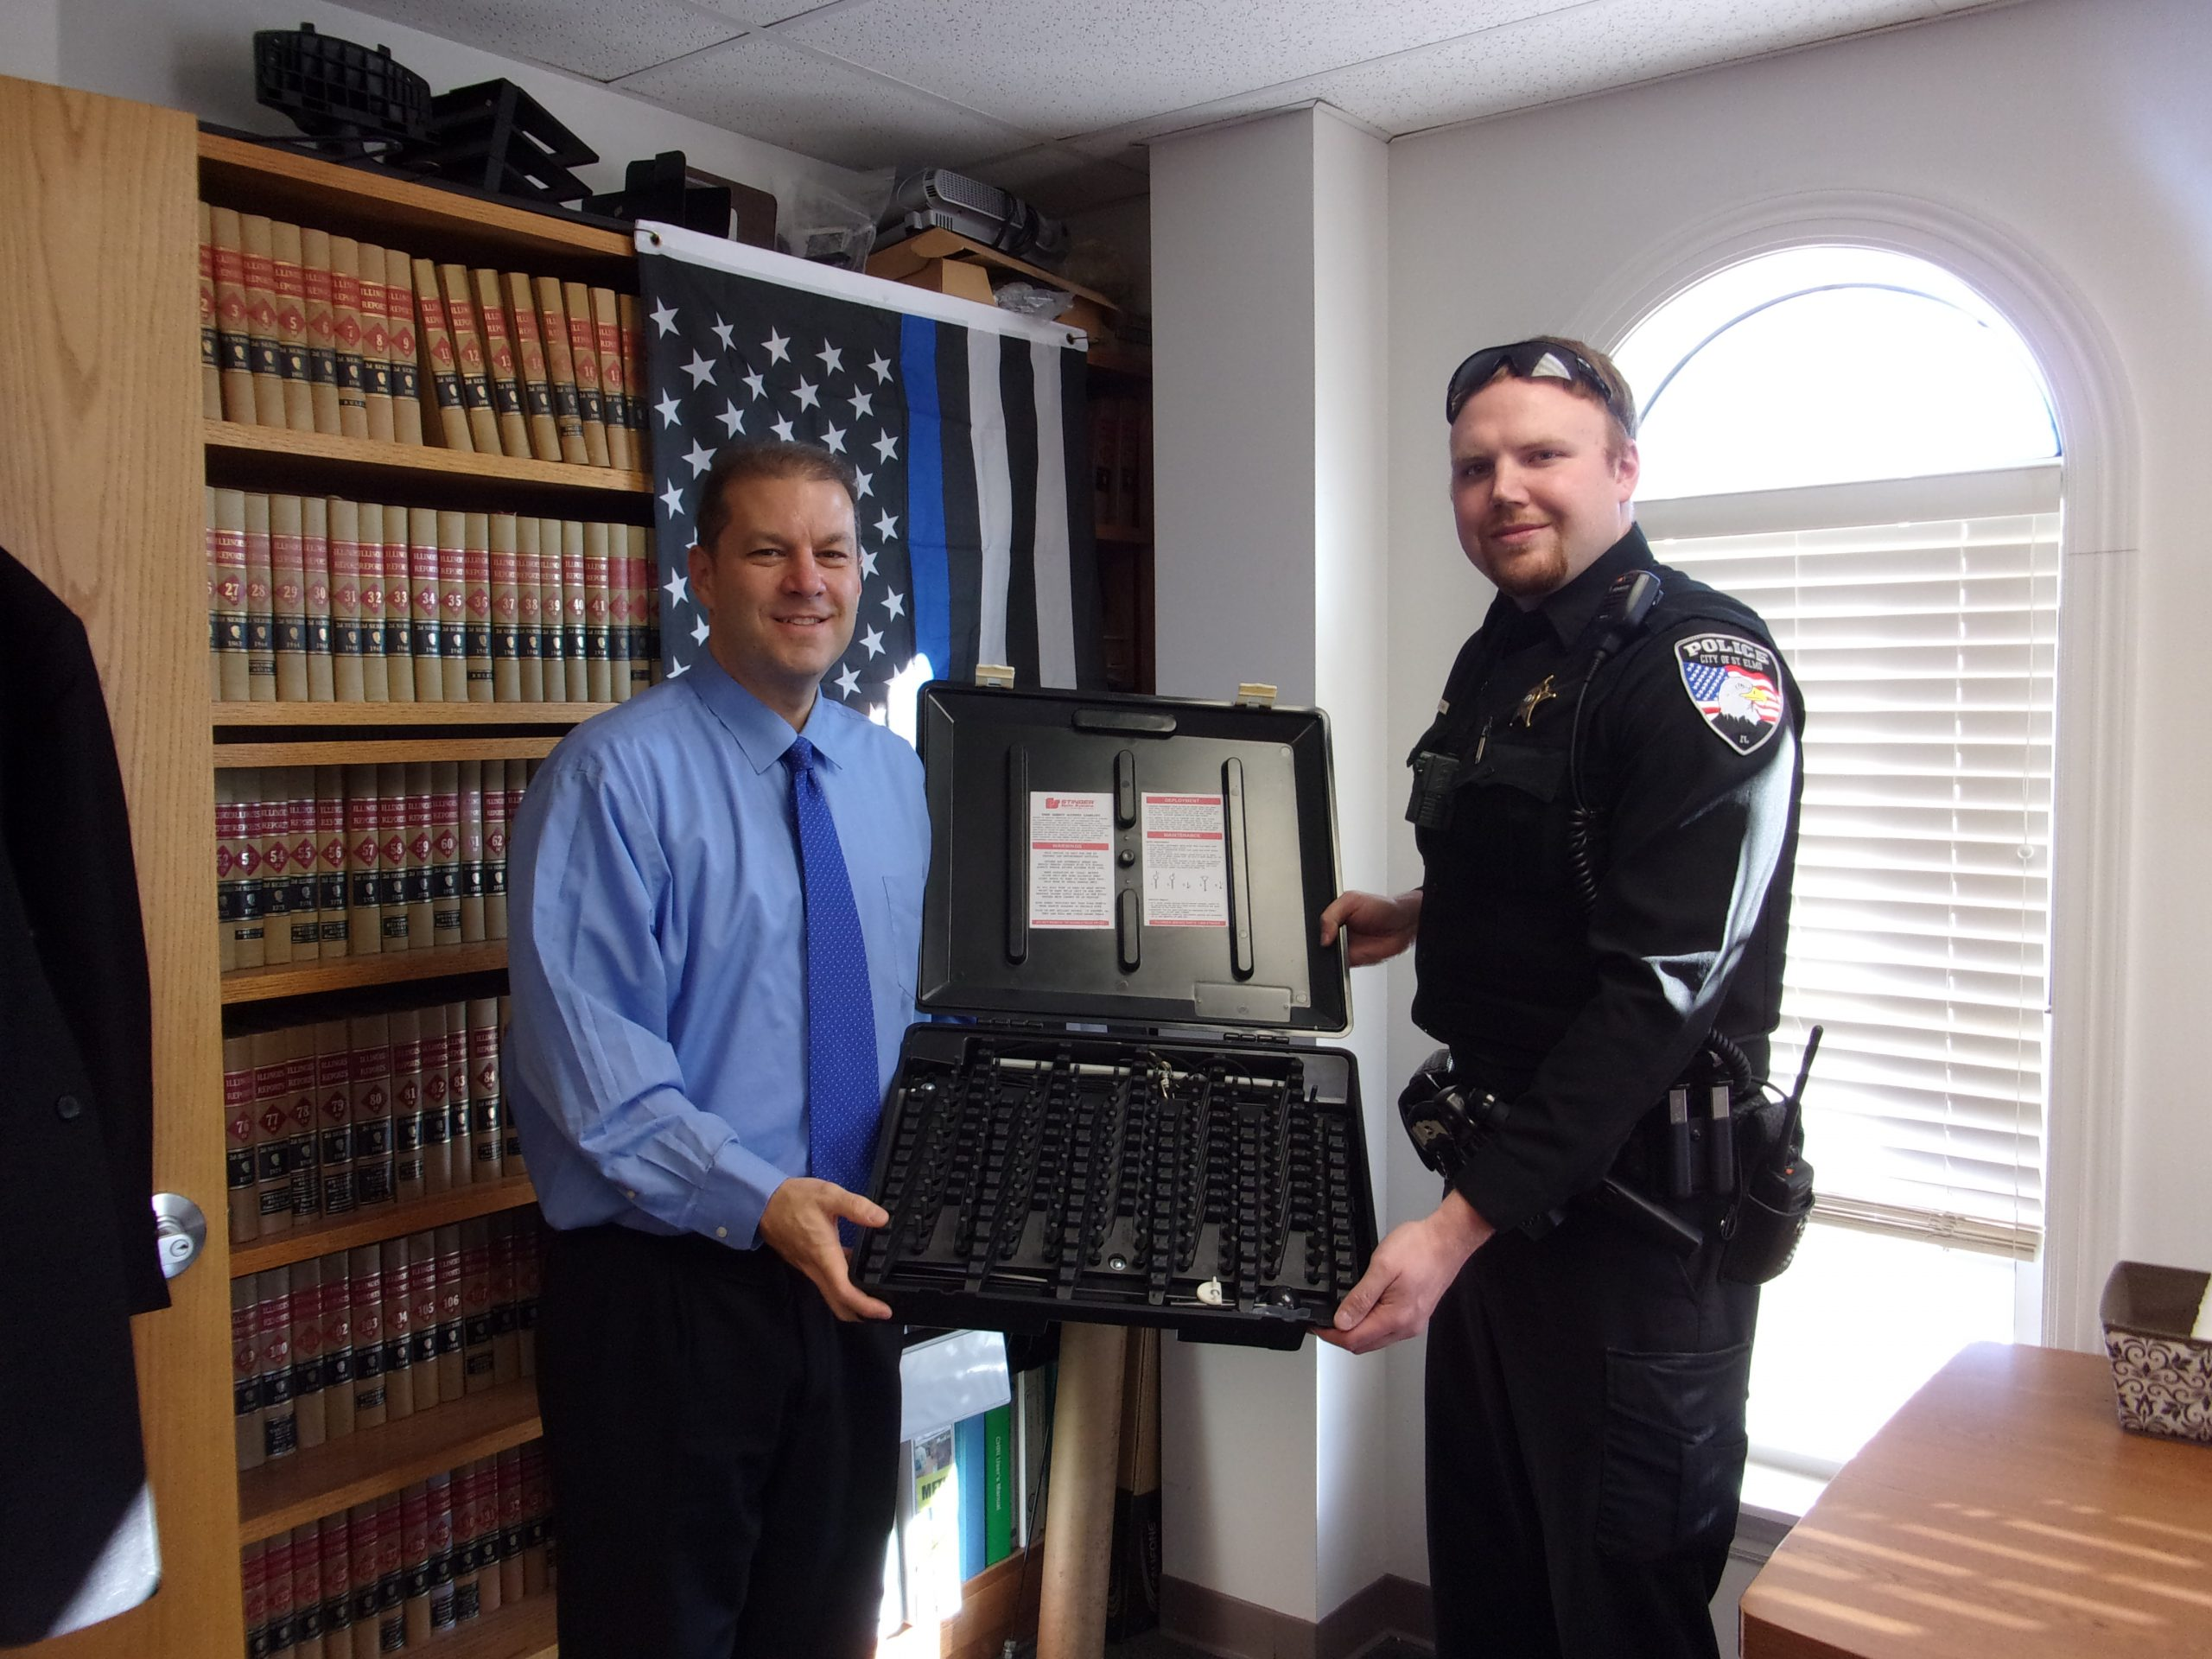 St. Elmo's Police Receives New Equipment From Fayette County State's Attorney